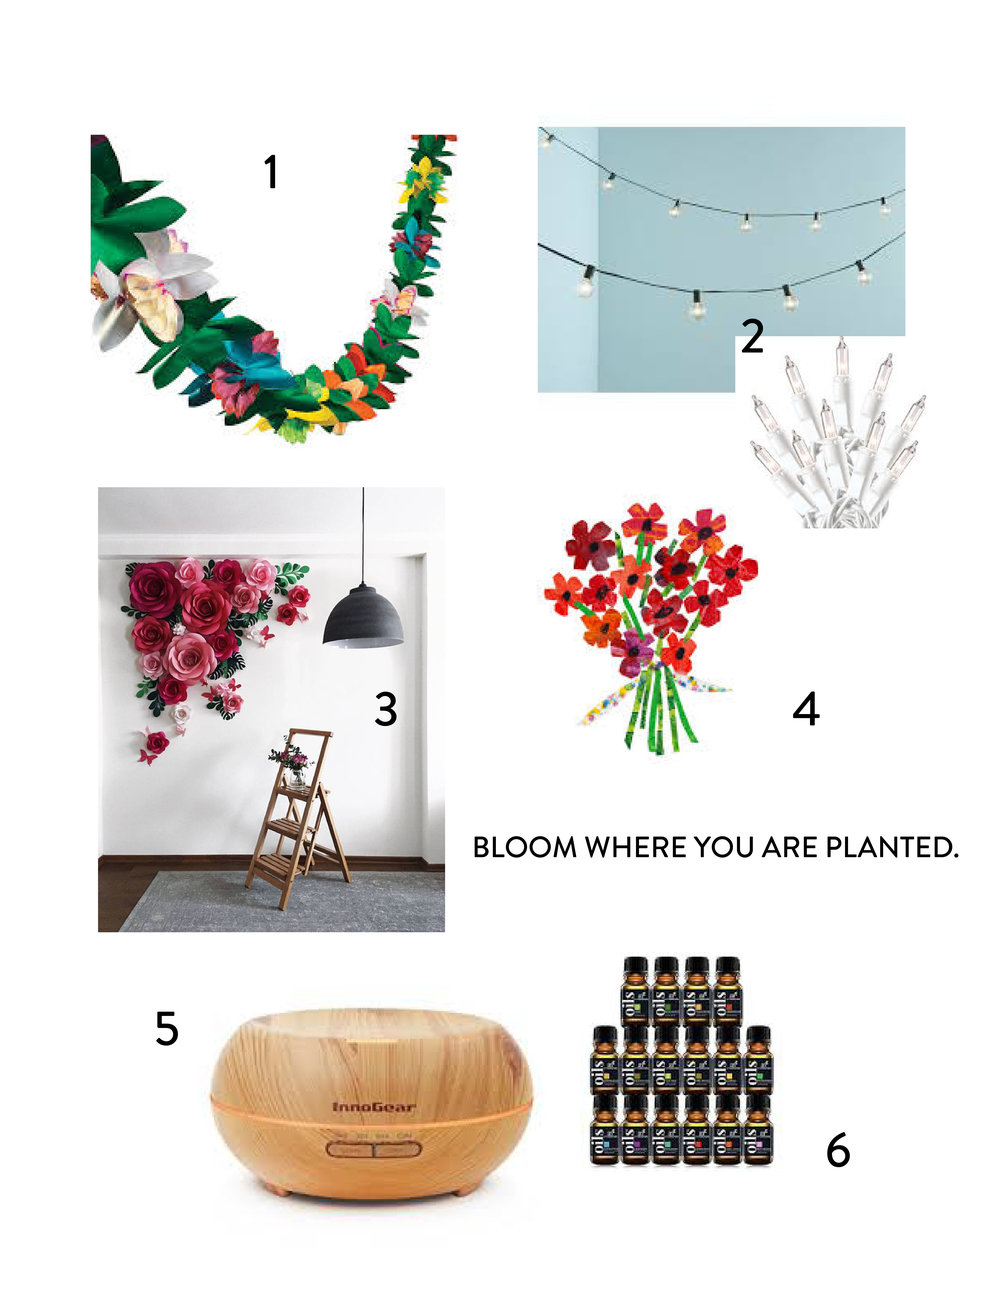 1. Tissue Flower Garland 2. Clear Globe Lights and Mini String Lights 3. DIY Giant Paper Flowers 4. Garden theme inspired by Eric Carle's book, The Tiny Seed 5. Essential Oil Diffuser 6. Essential Oils